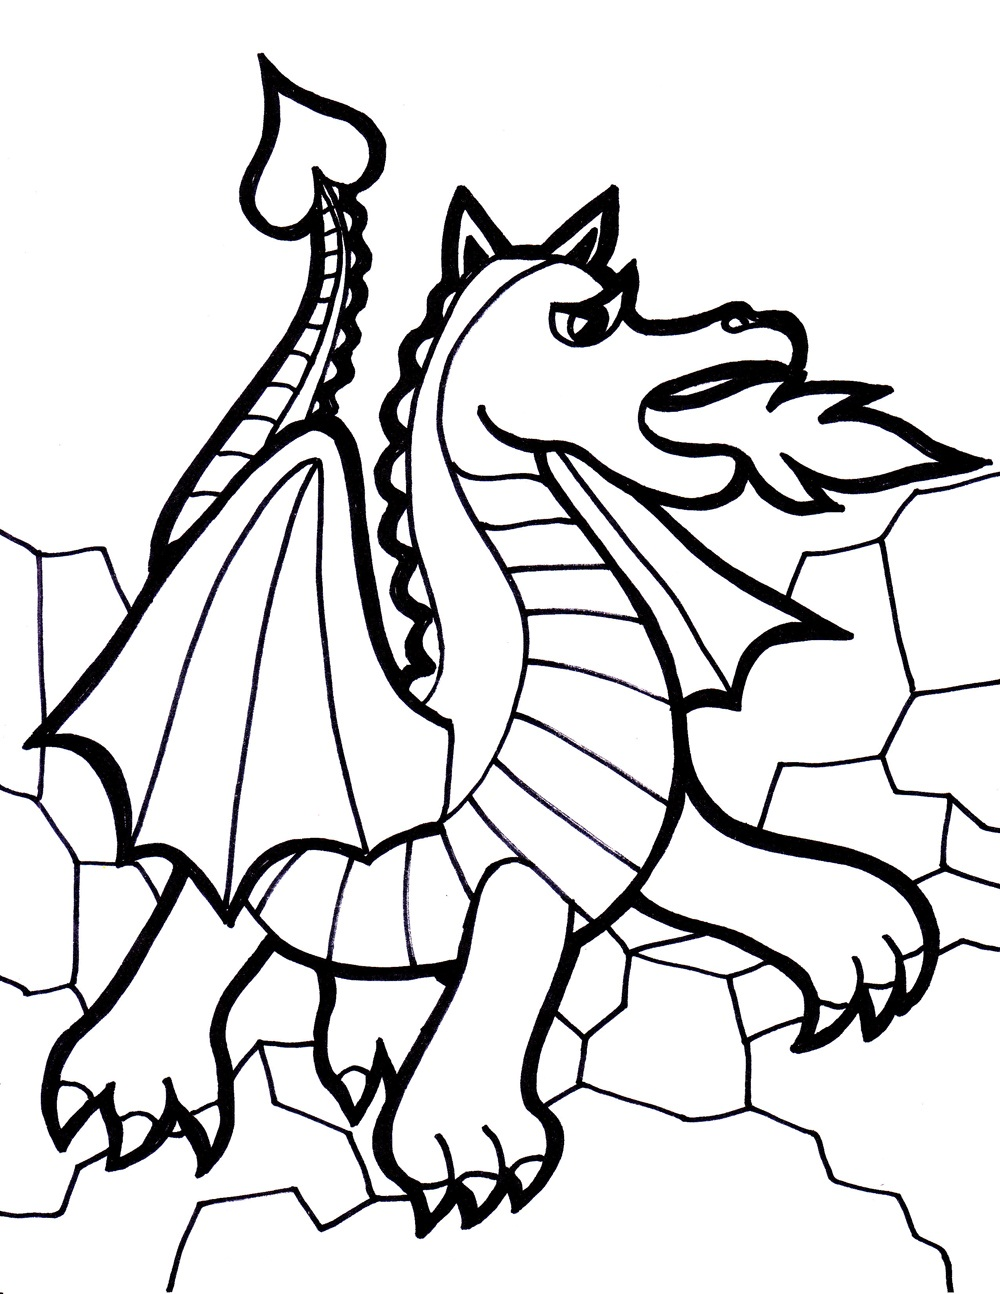 dragon coloring pages free - photo#35